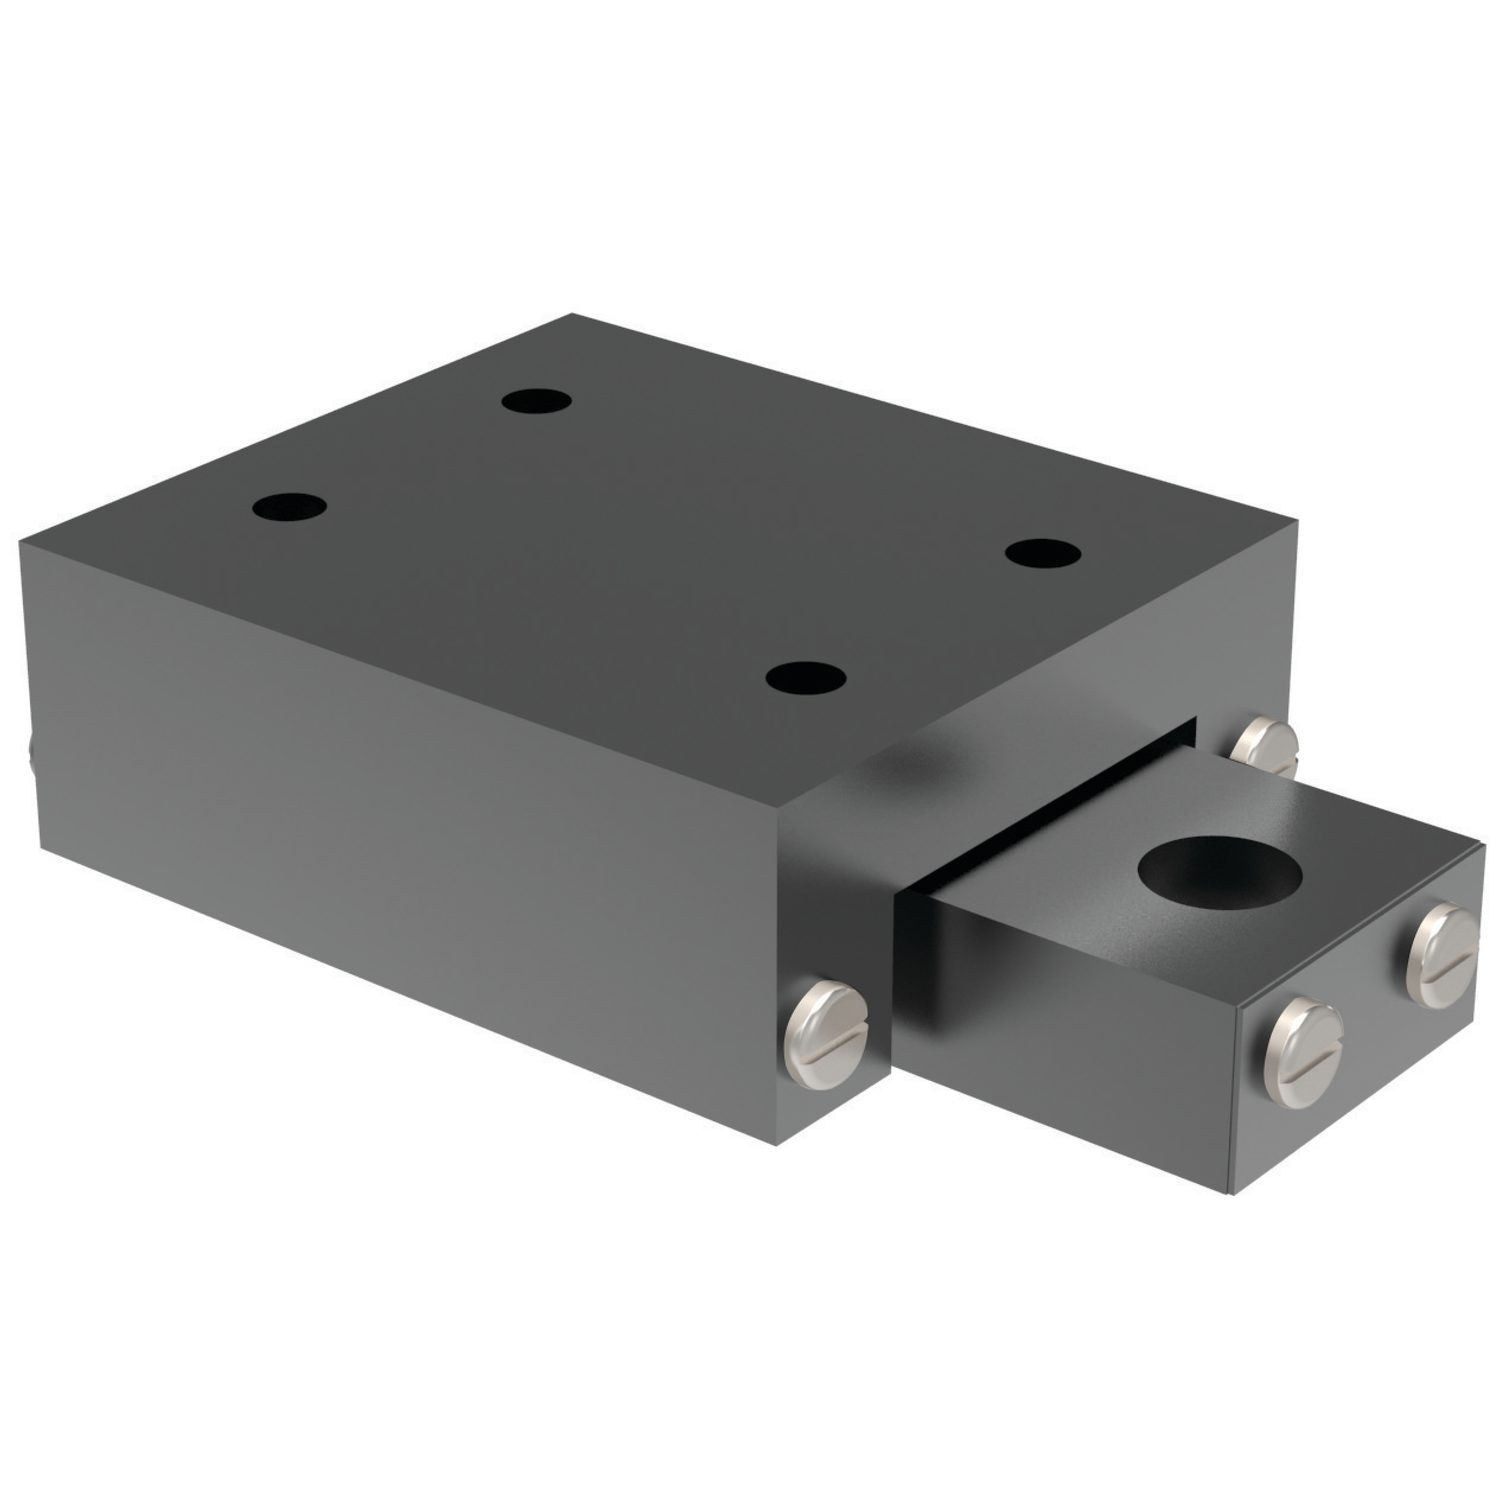 L1030 - Low Profile Ball Slide Assemblies